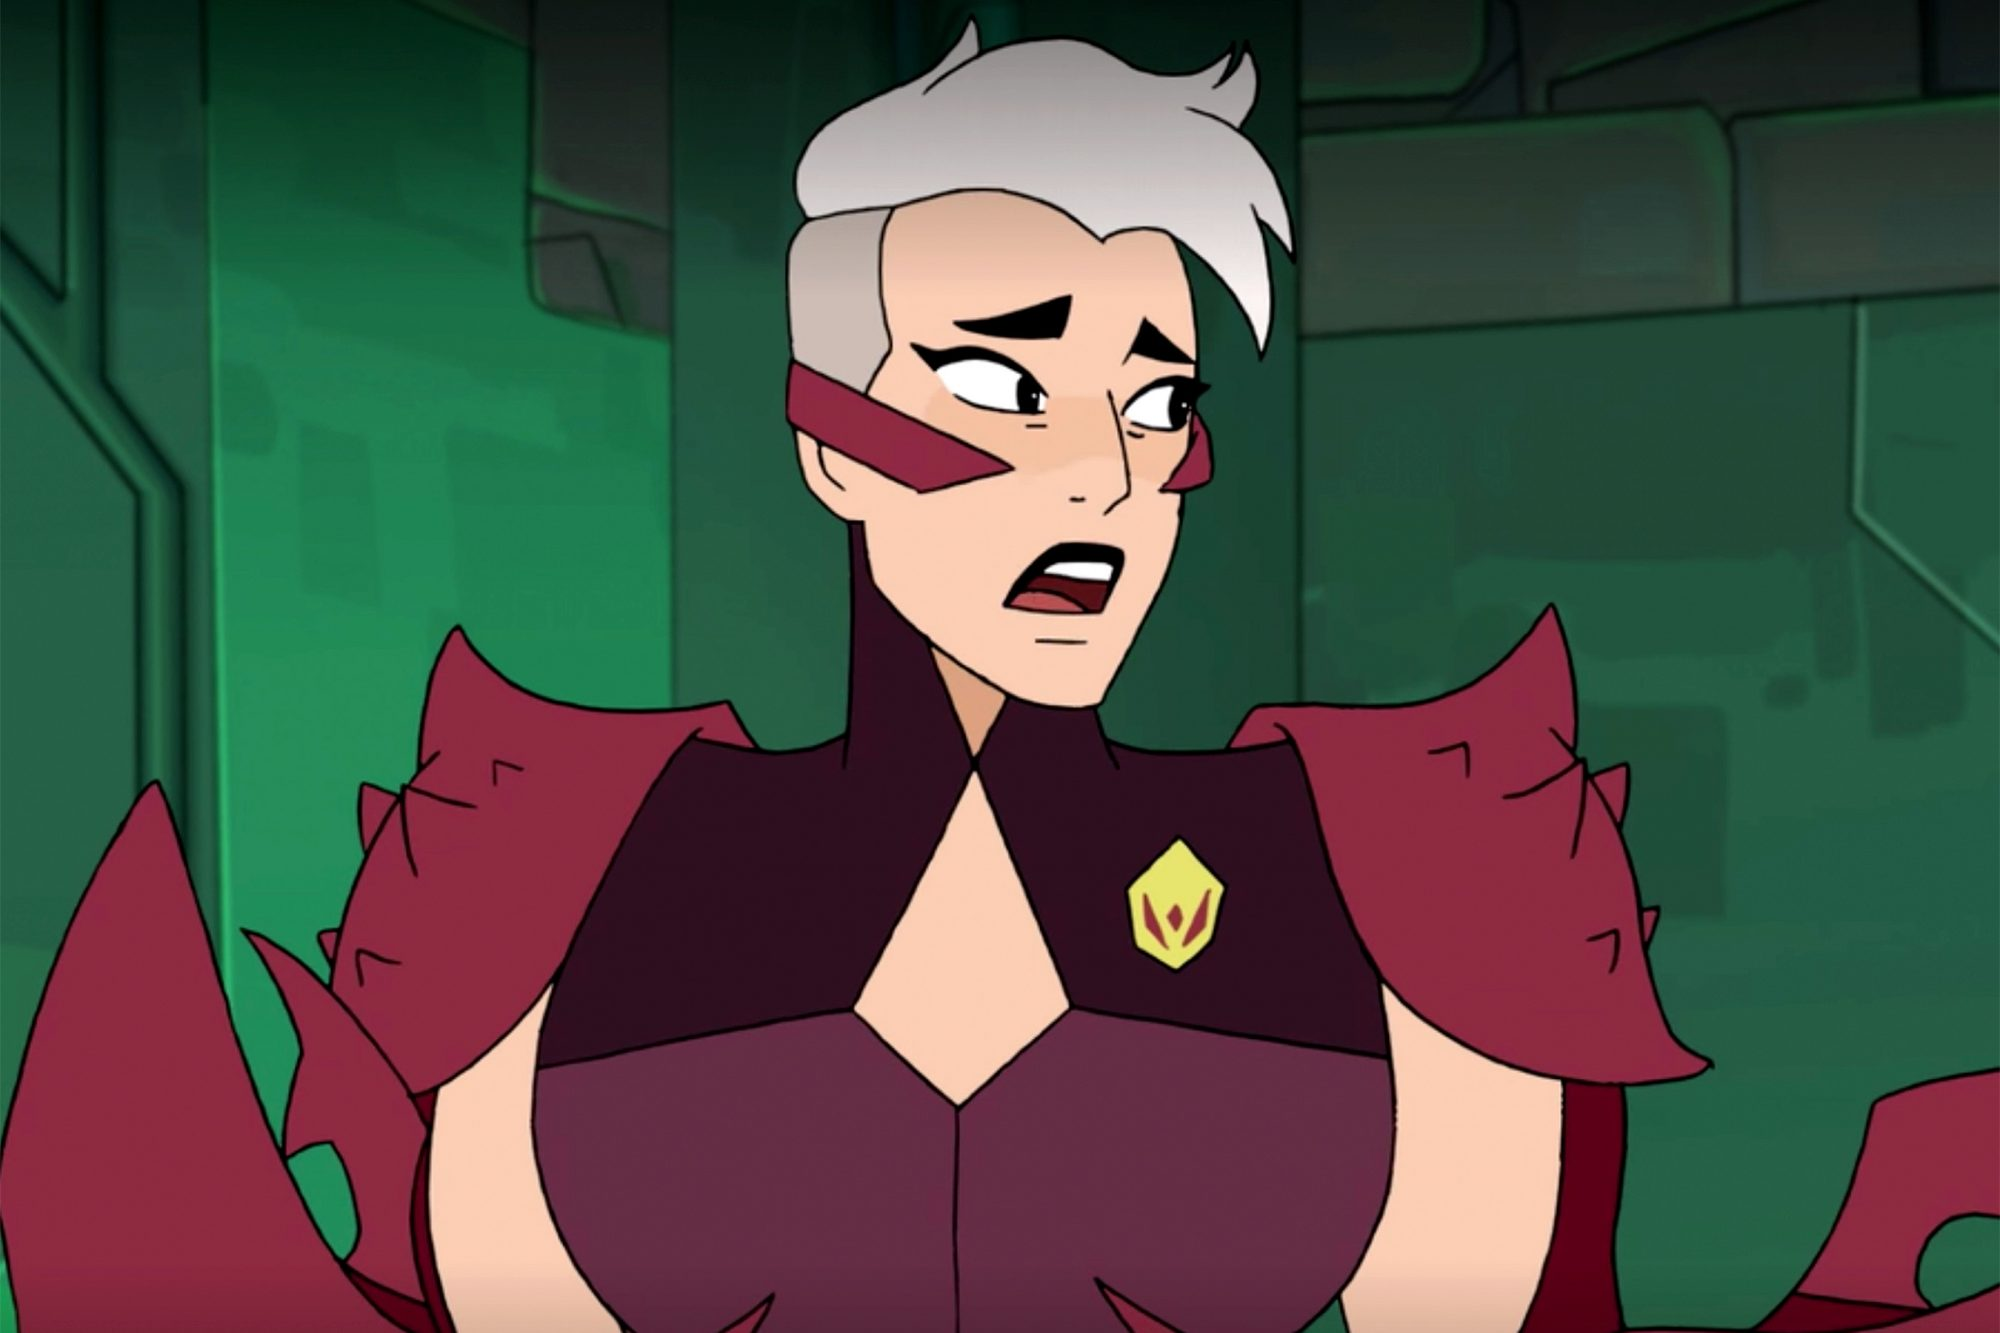 Scorpia in She-Ra and the Princesses of Power